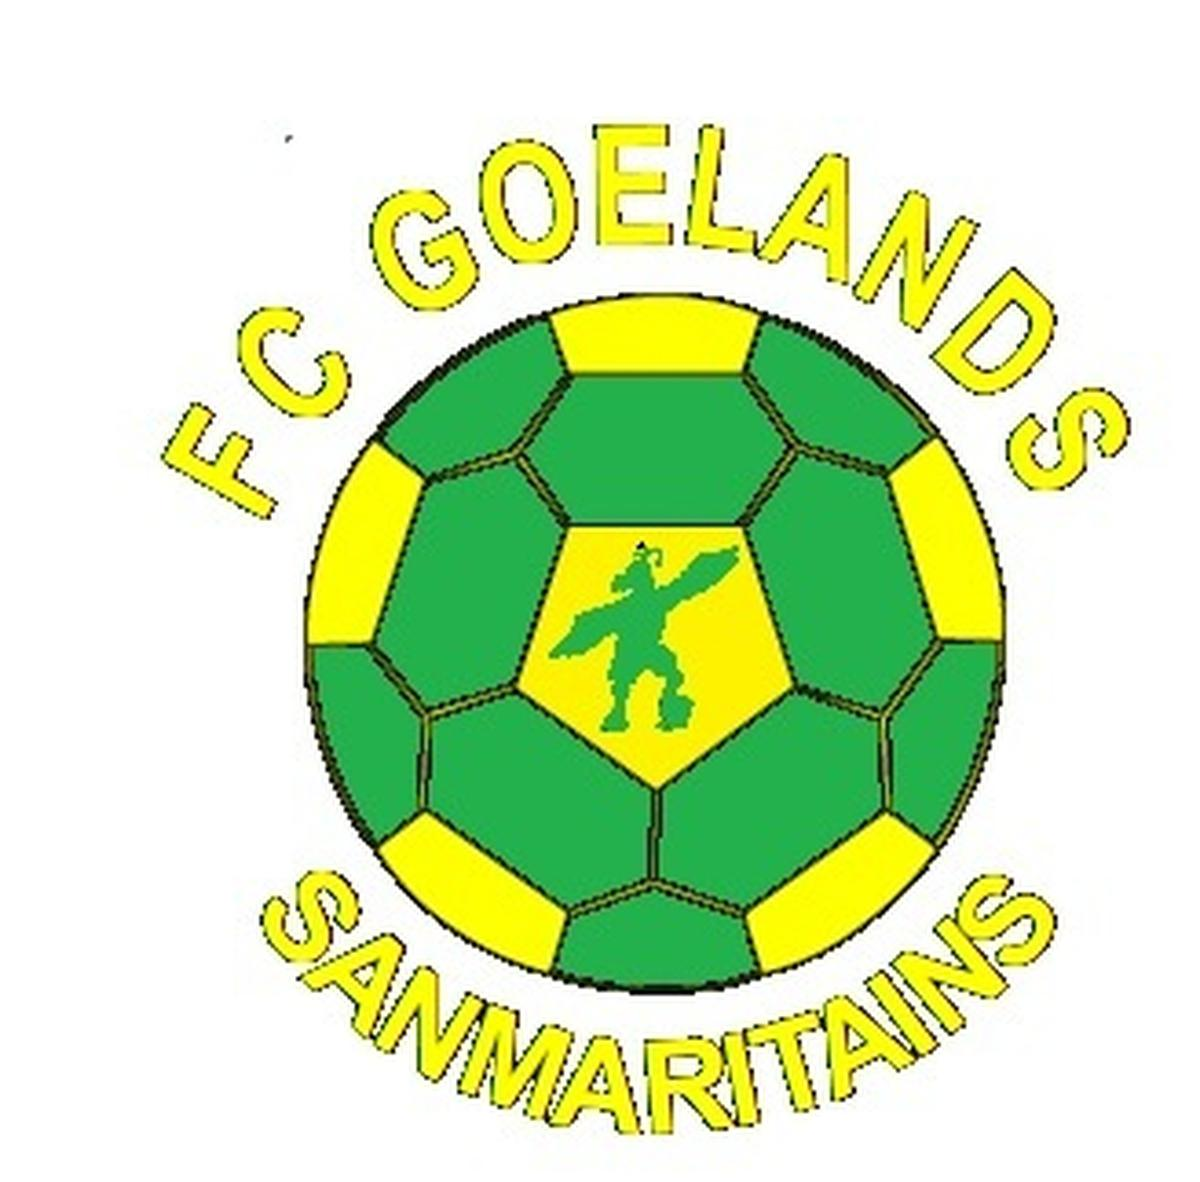 Goelands Sanmaritains 3